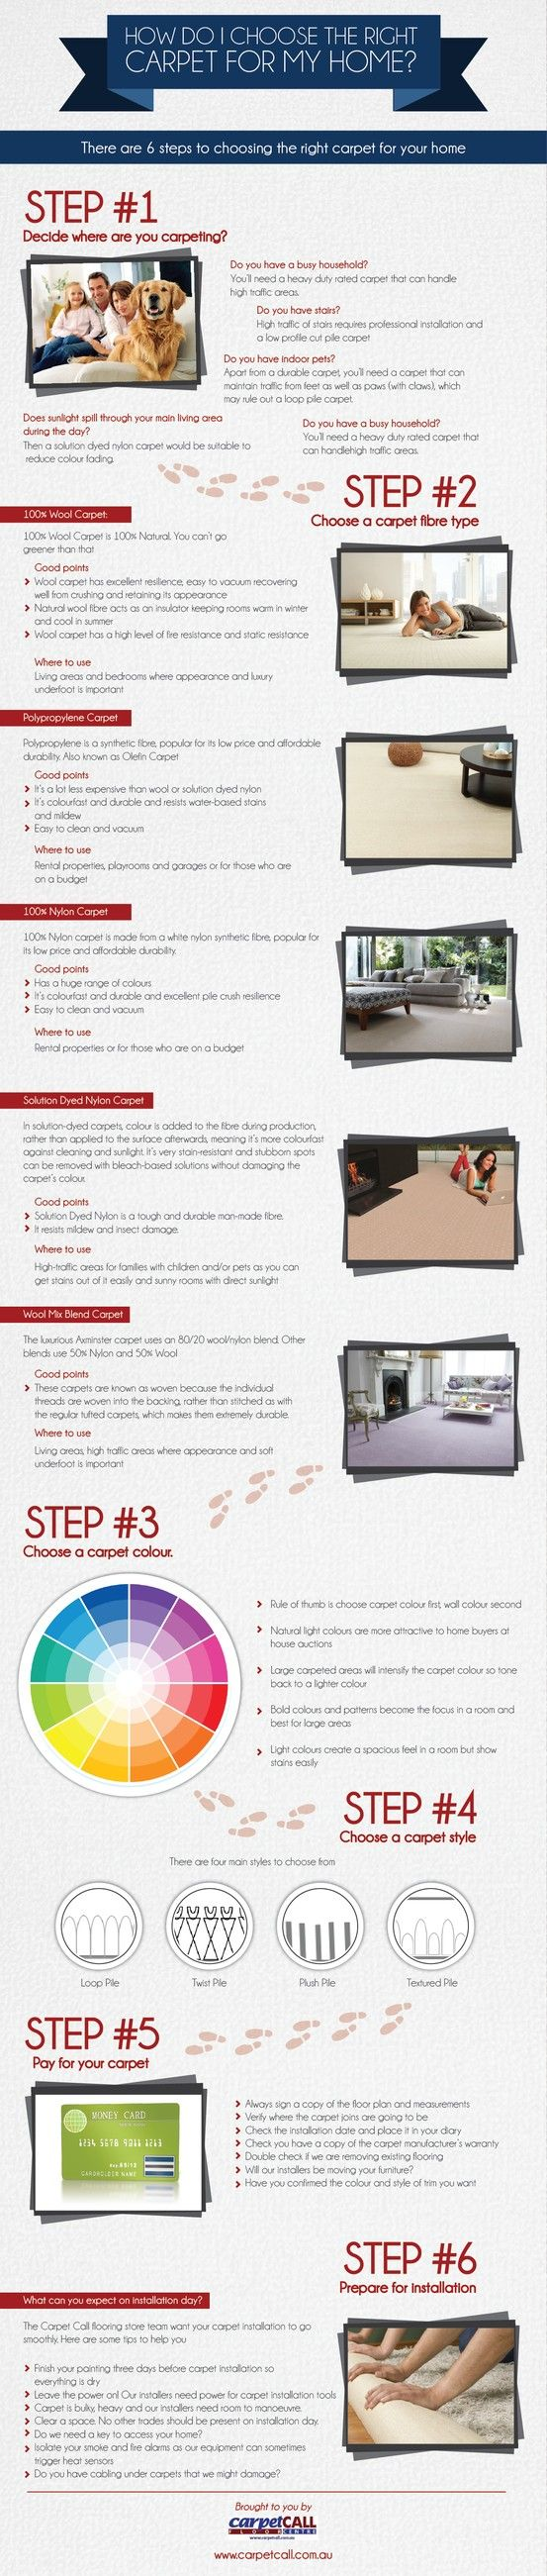 How do you choose carpet for your home? Carpet Call have created this handy flooring infographic to help you ask the right questions when choosing a carpet for your home. Knowing how different styles and fibres perform in your home will ensure you choose your carpet according to your lifestyle needs